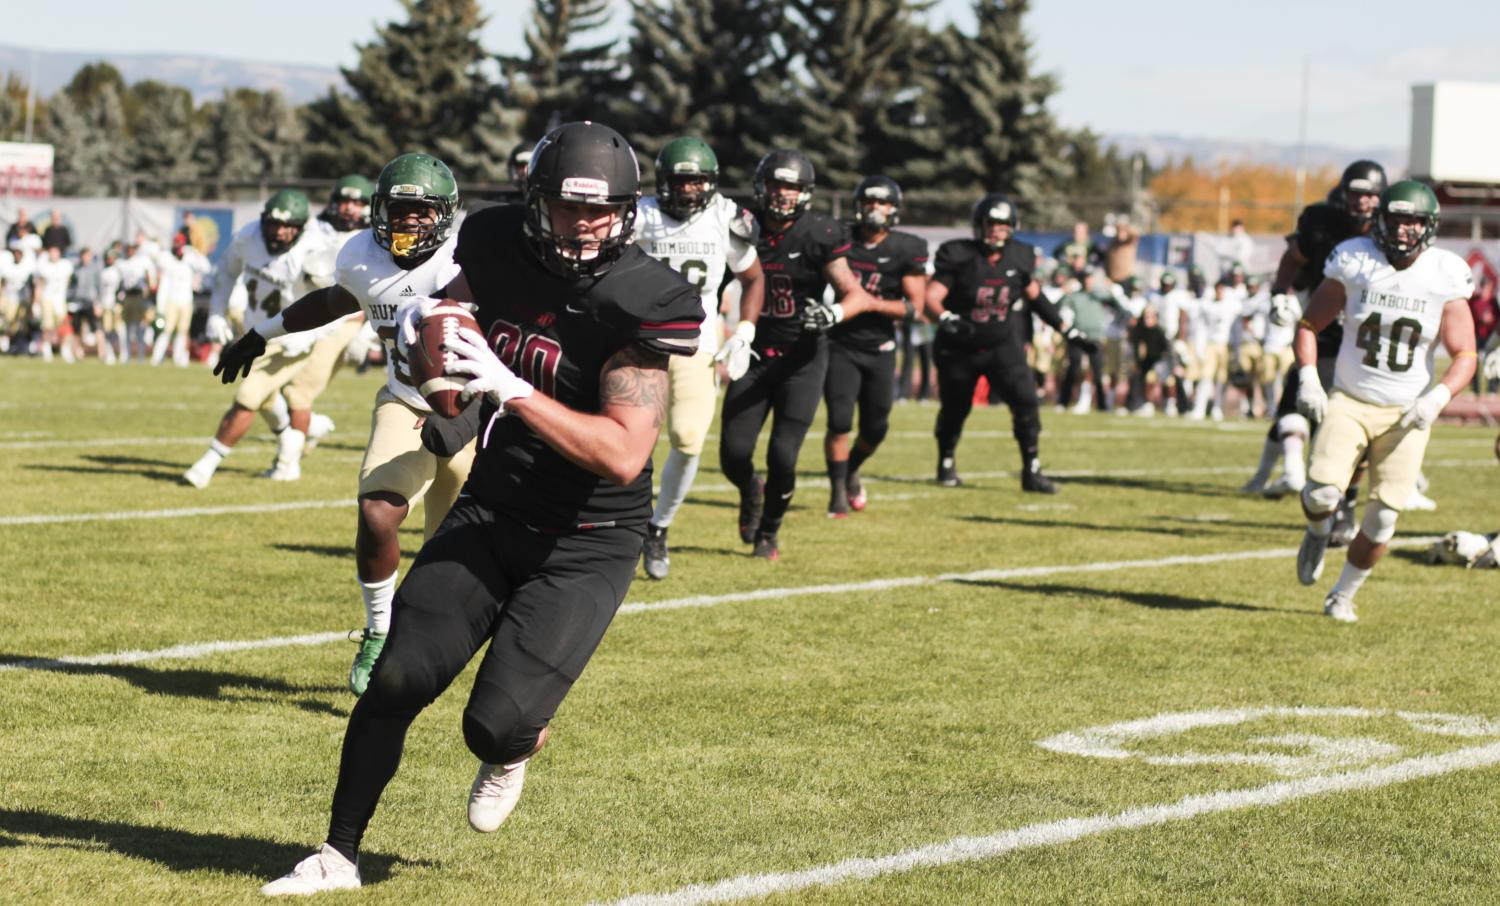 Junior Dillon Sugg runs ahead of teammates and opponents during a home game on Oct. 7 vs. Humboldt State University.